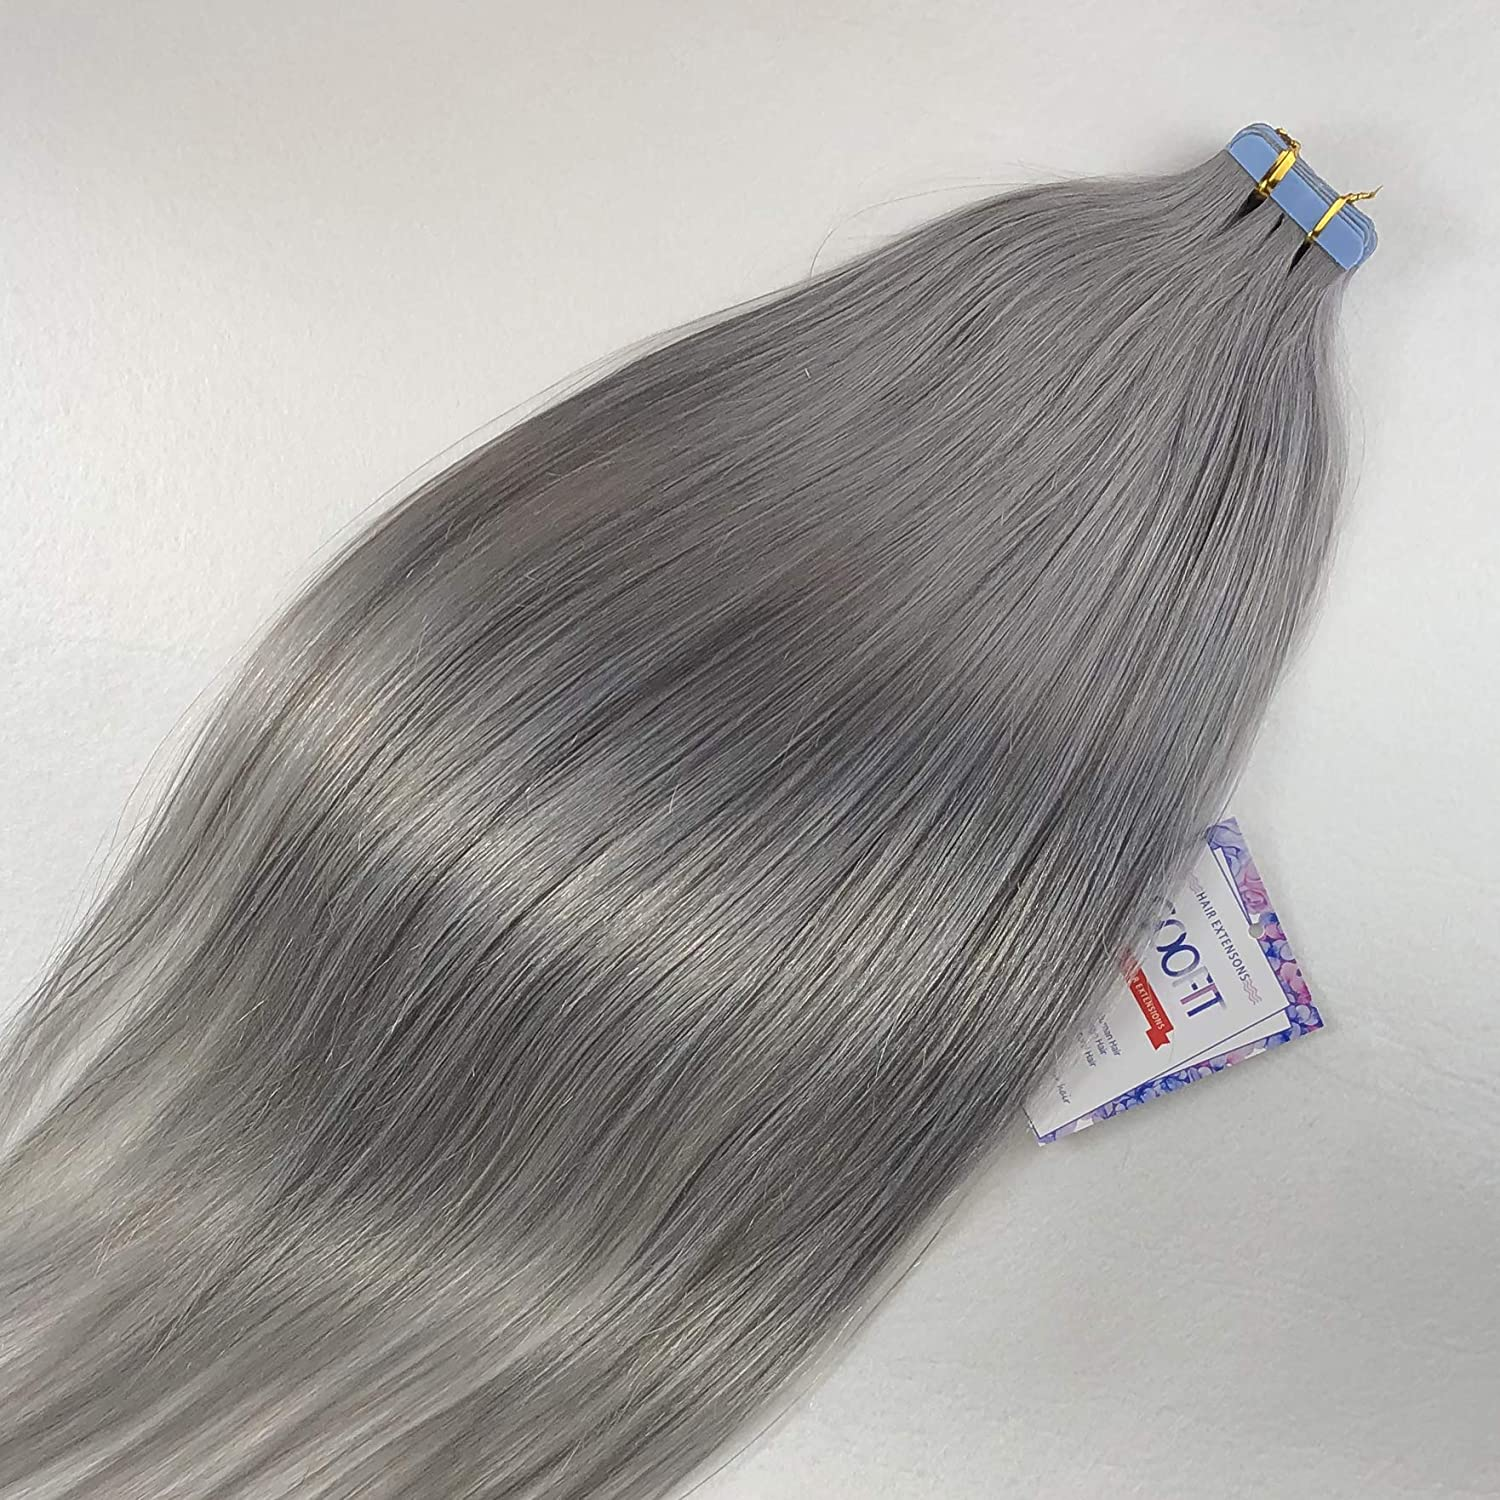 GOOFIT Tape National uniform free shipping in Dealing full price reduction Hair Extensions 20pcs - Remy 100% Real Human